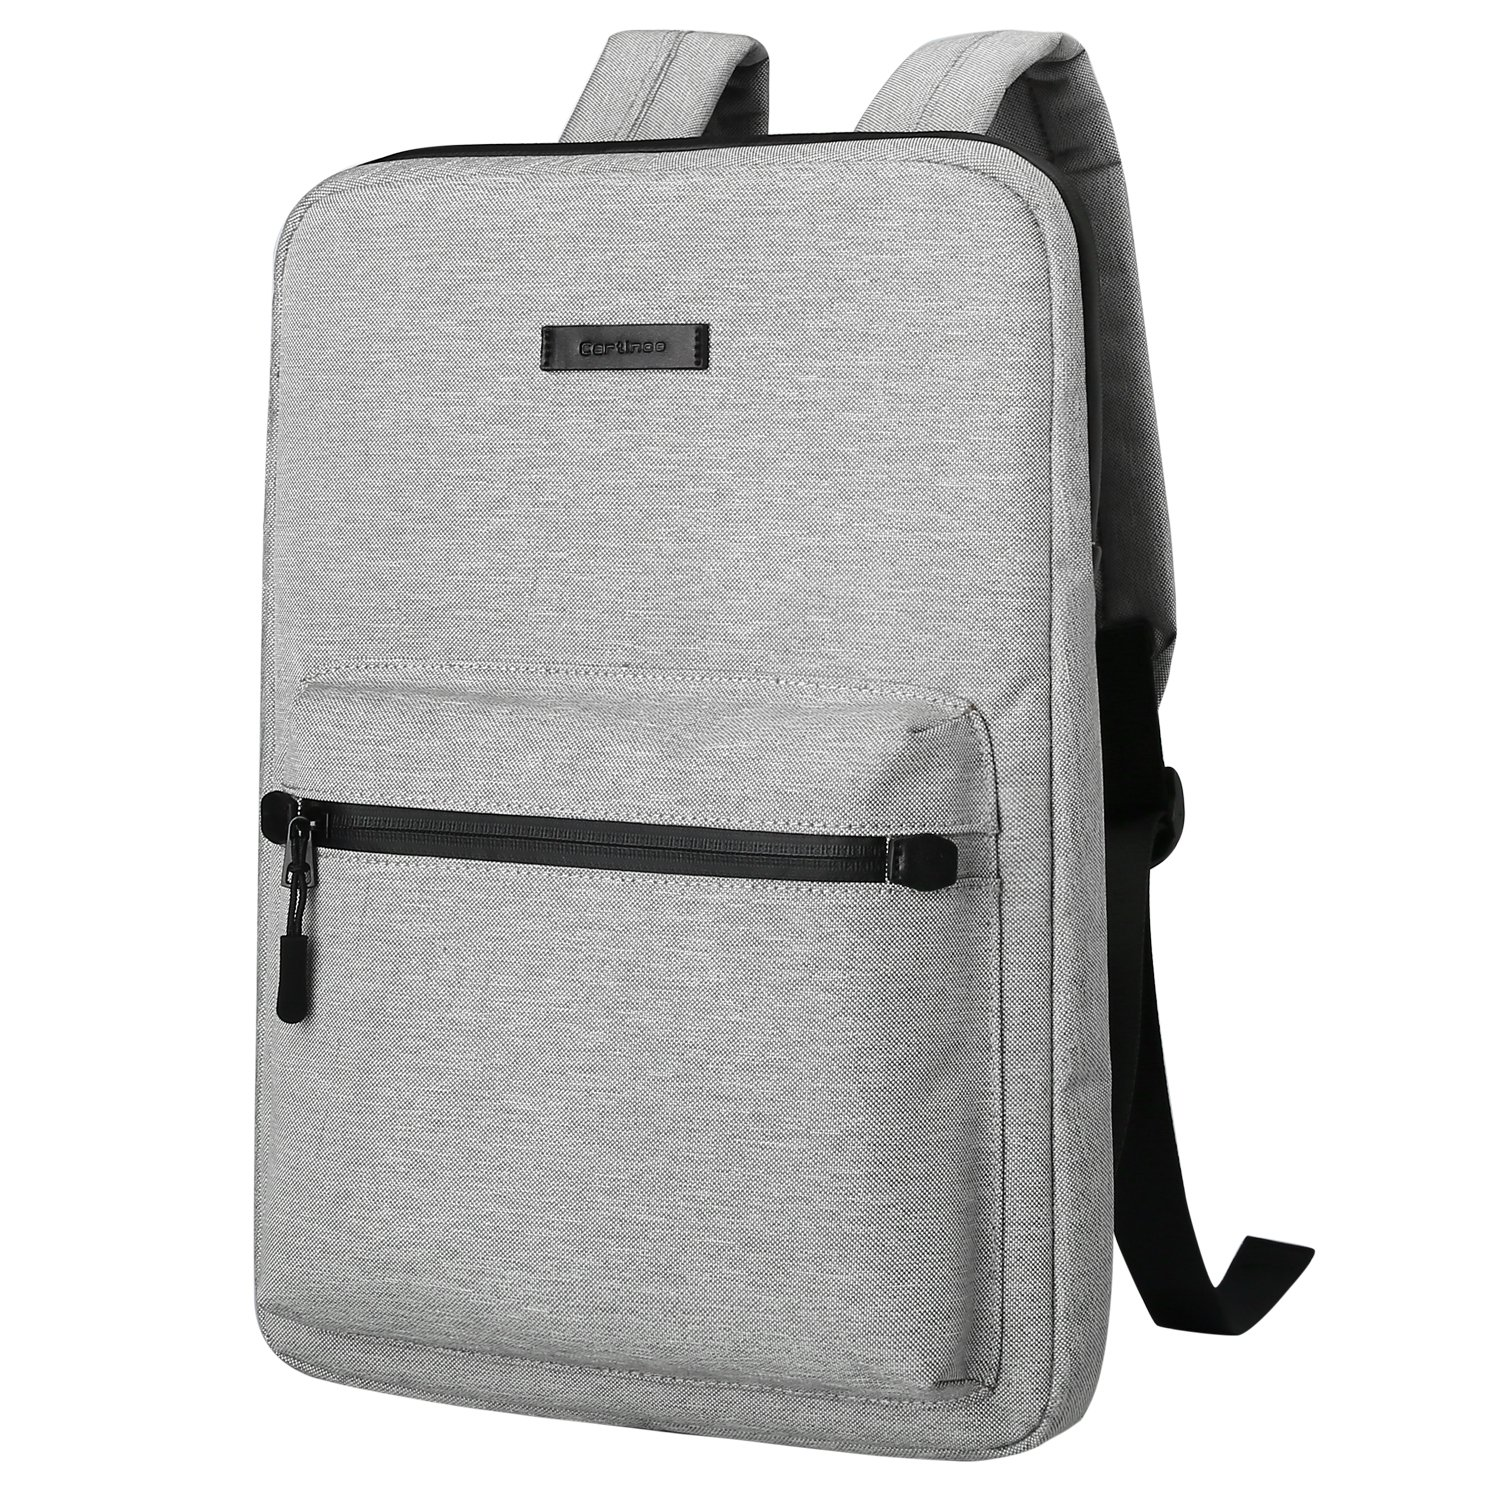 3b5068706137a4 Ultra-Thin Laptop Backpacks, Cartinoe Canvas Lightweight Backpack for Girls  School Rucksack Women College Bookbag, 13 14 15 inch Chromebook Laptop Bag  for ...